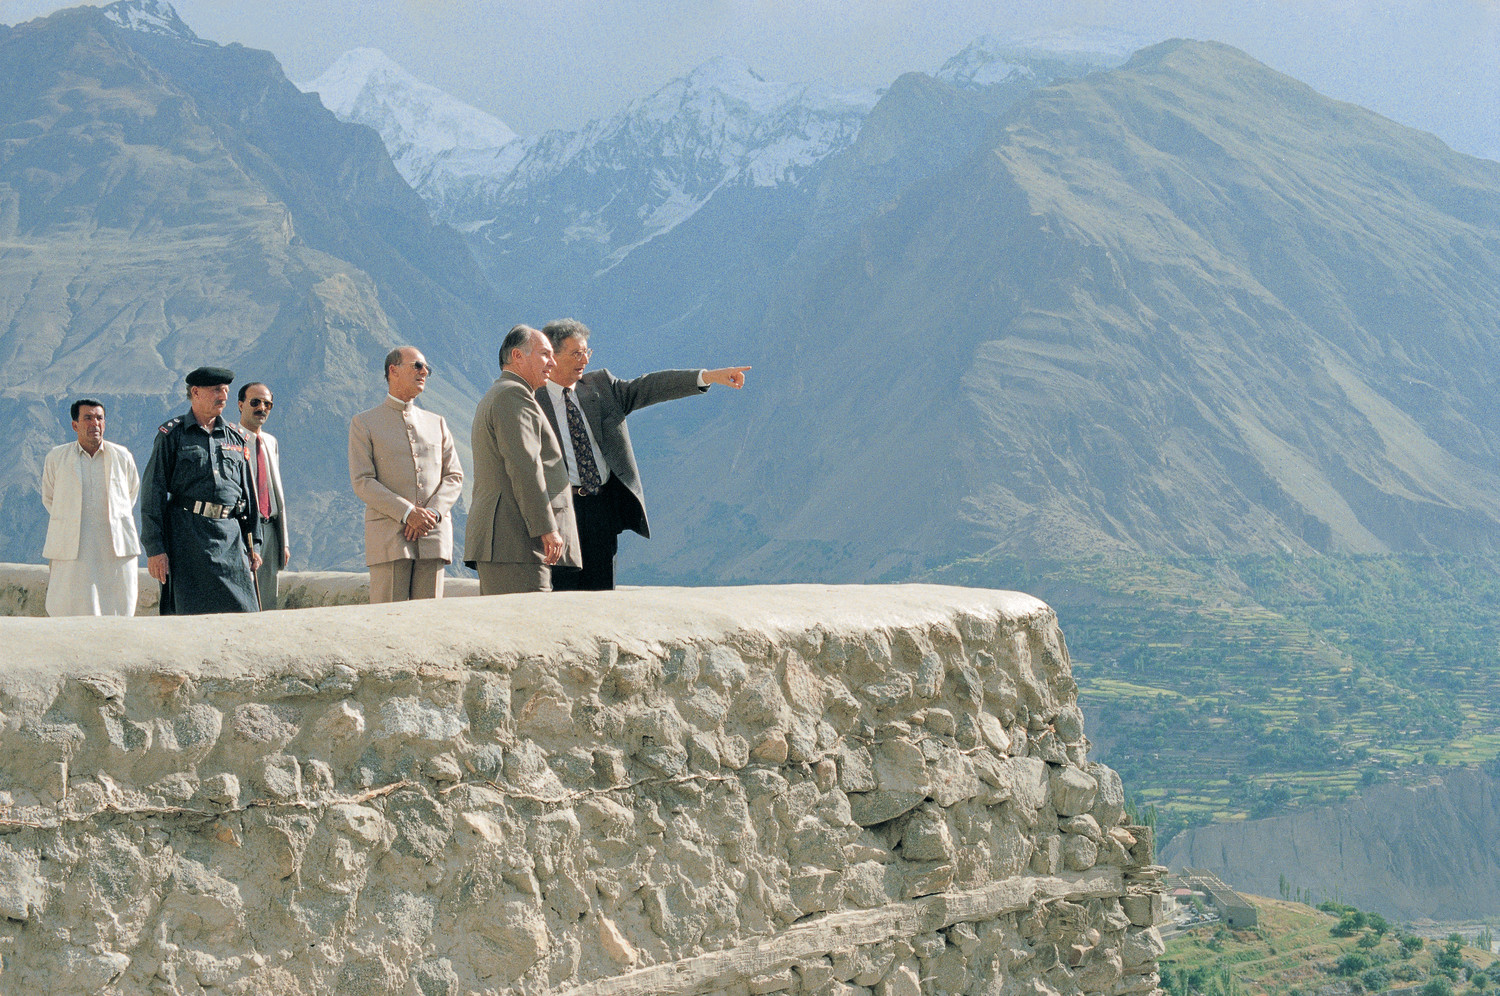 Mawlana Hazar Imam and Prince Amyn take in a view of the mountainous Hunza valley from the vantage point of the 700-year-old Baltit Fort, whose restoration by the Historic Cities Programme of the Aga Khan Trust for Culture began in 1992. Photo: AKDN / Gary Otte